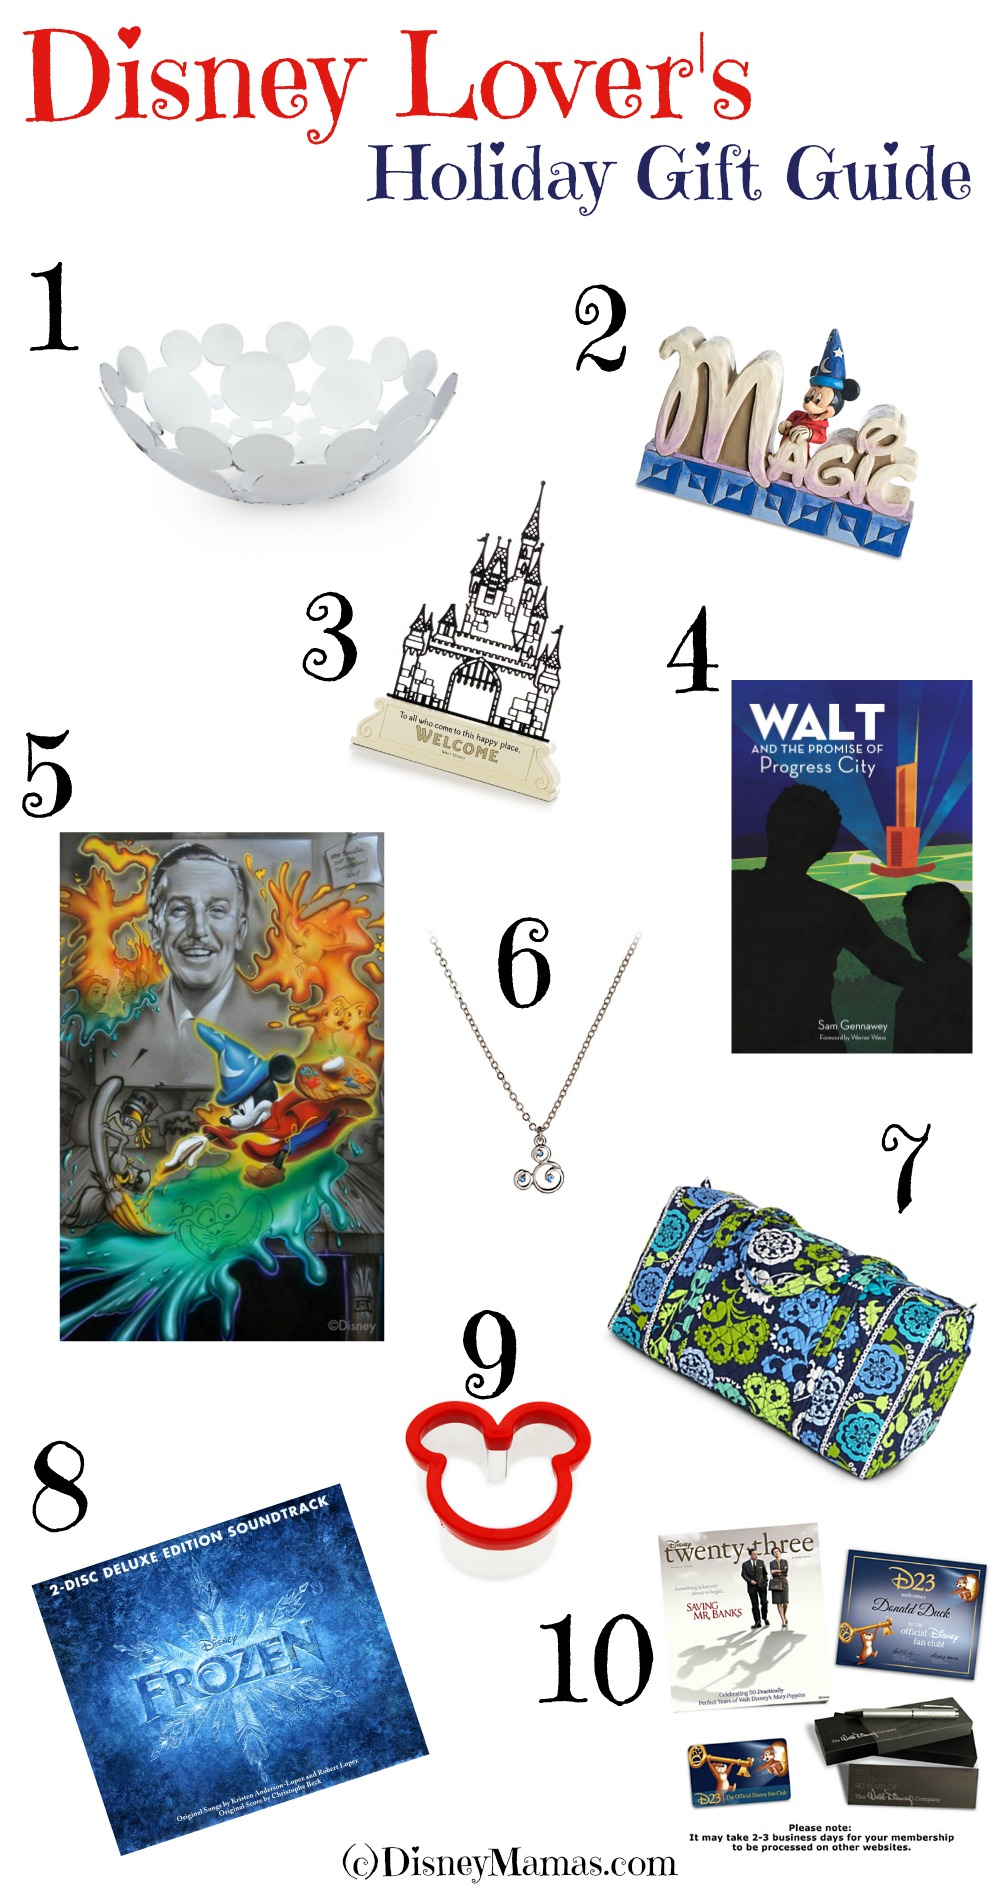 Disney-Lovers-Holiday-Gift-Guide